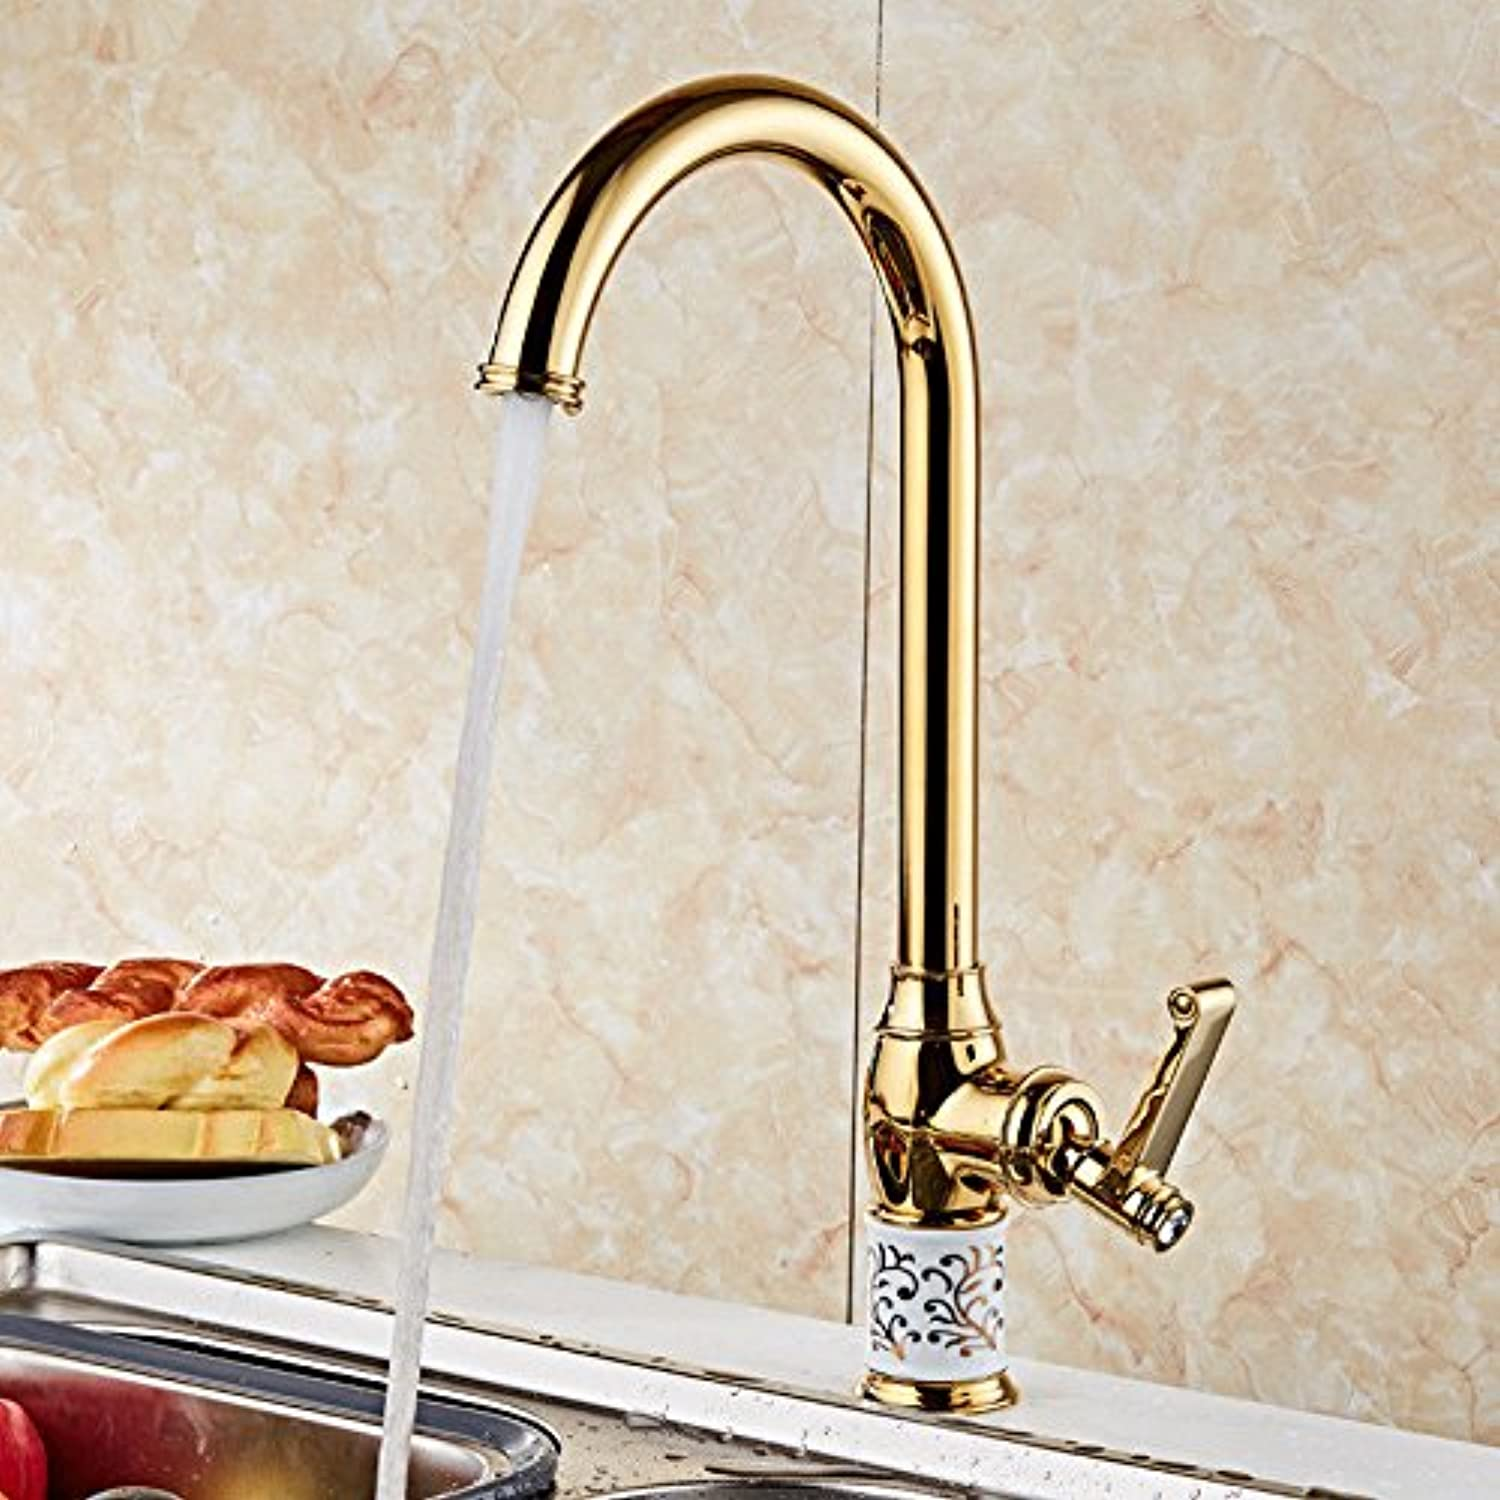 Gyps Faucet Basin Mixer Tap Waterfall Faucet Bathroom The copper pink gold mixer kitchen faucet kitchen sink faucet hot and cold-water faucet single hole faucet Single Handle faucet sink mixer A